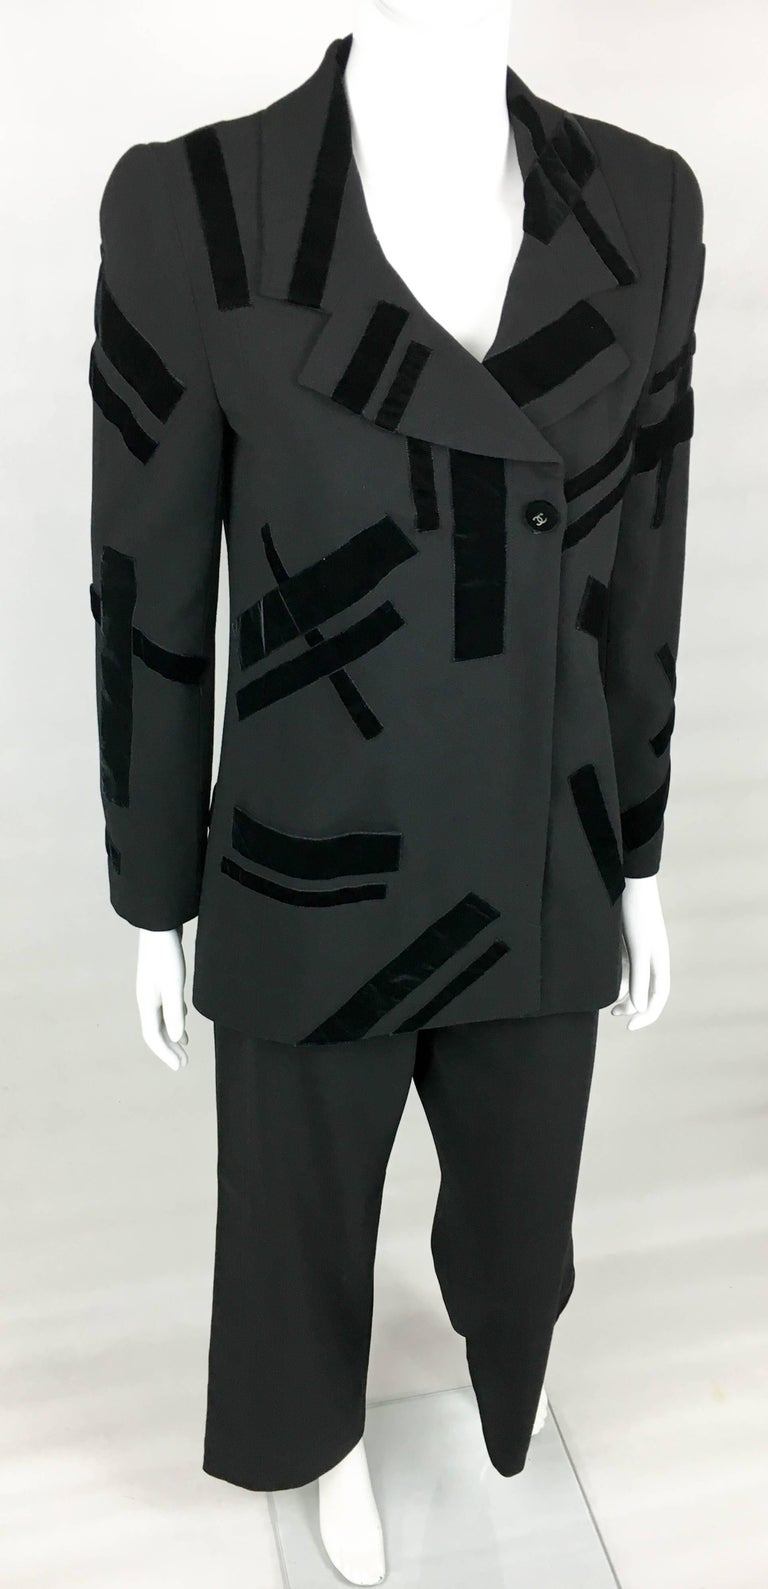 1998 Chanel Black Wool Trouser Suit With Velvet Details For Sale 2